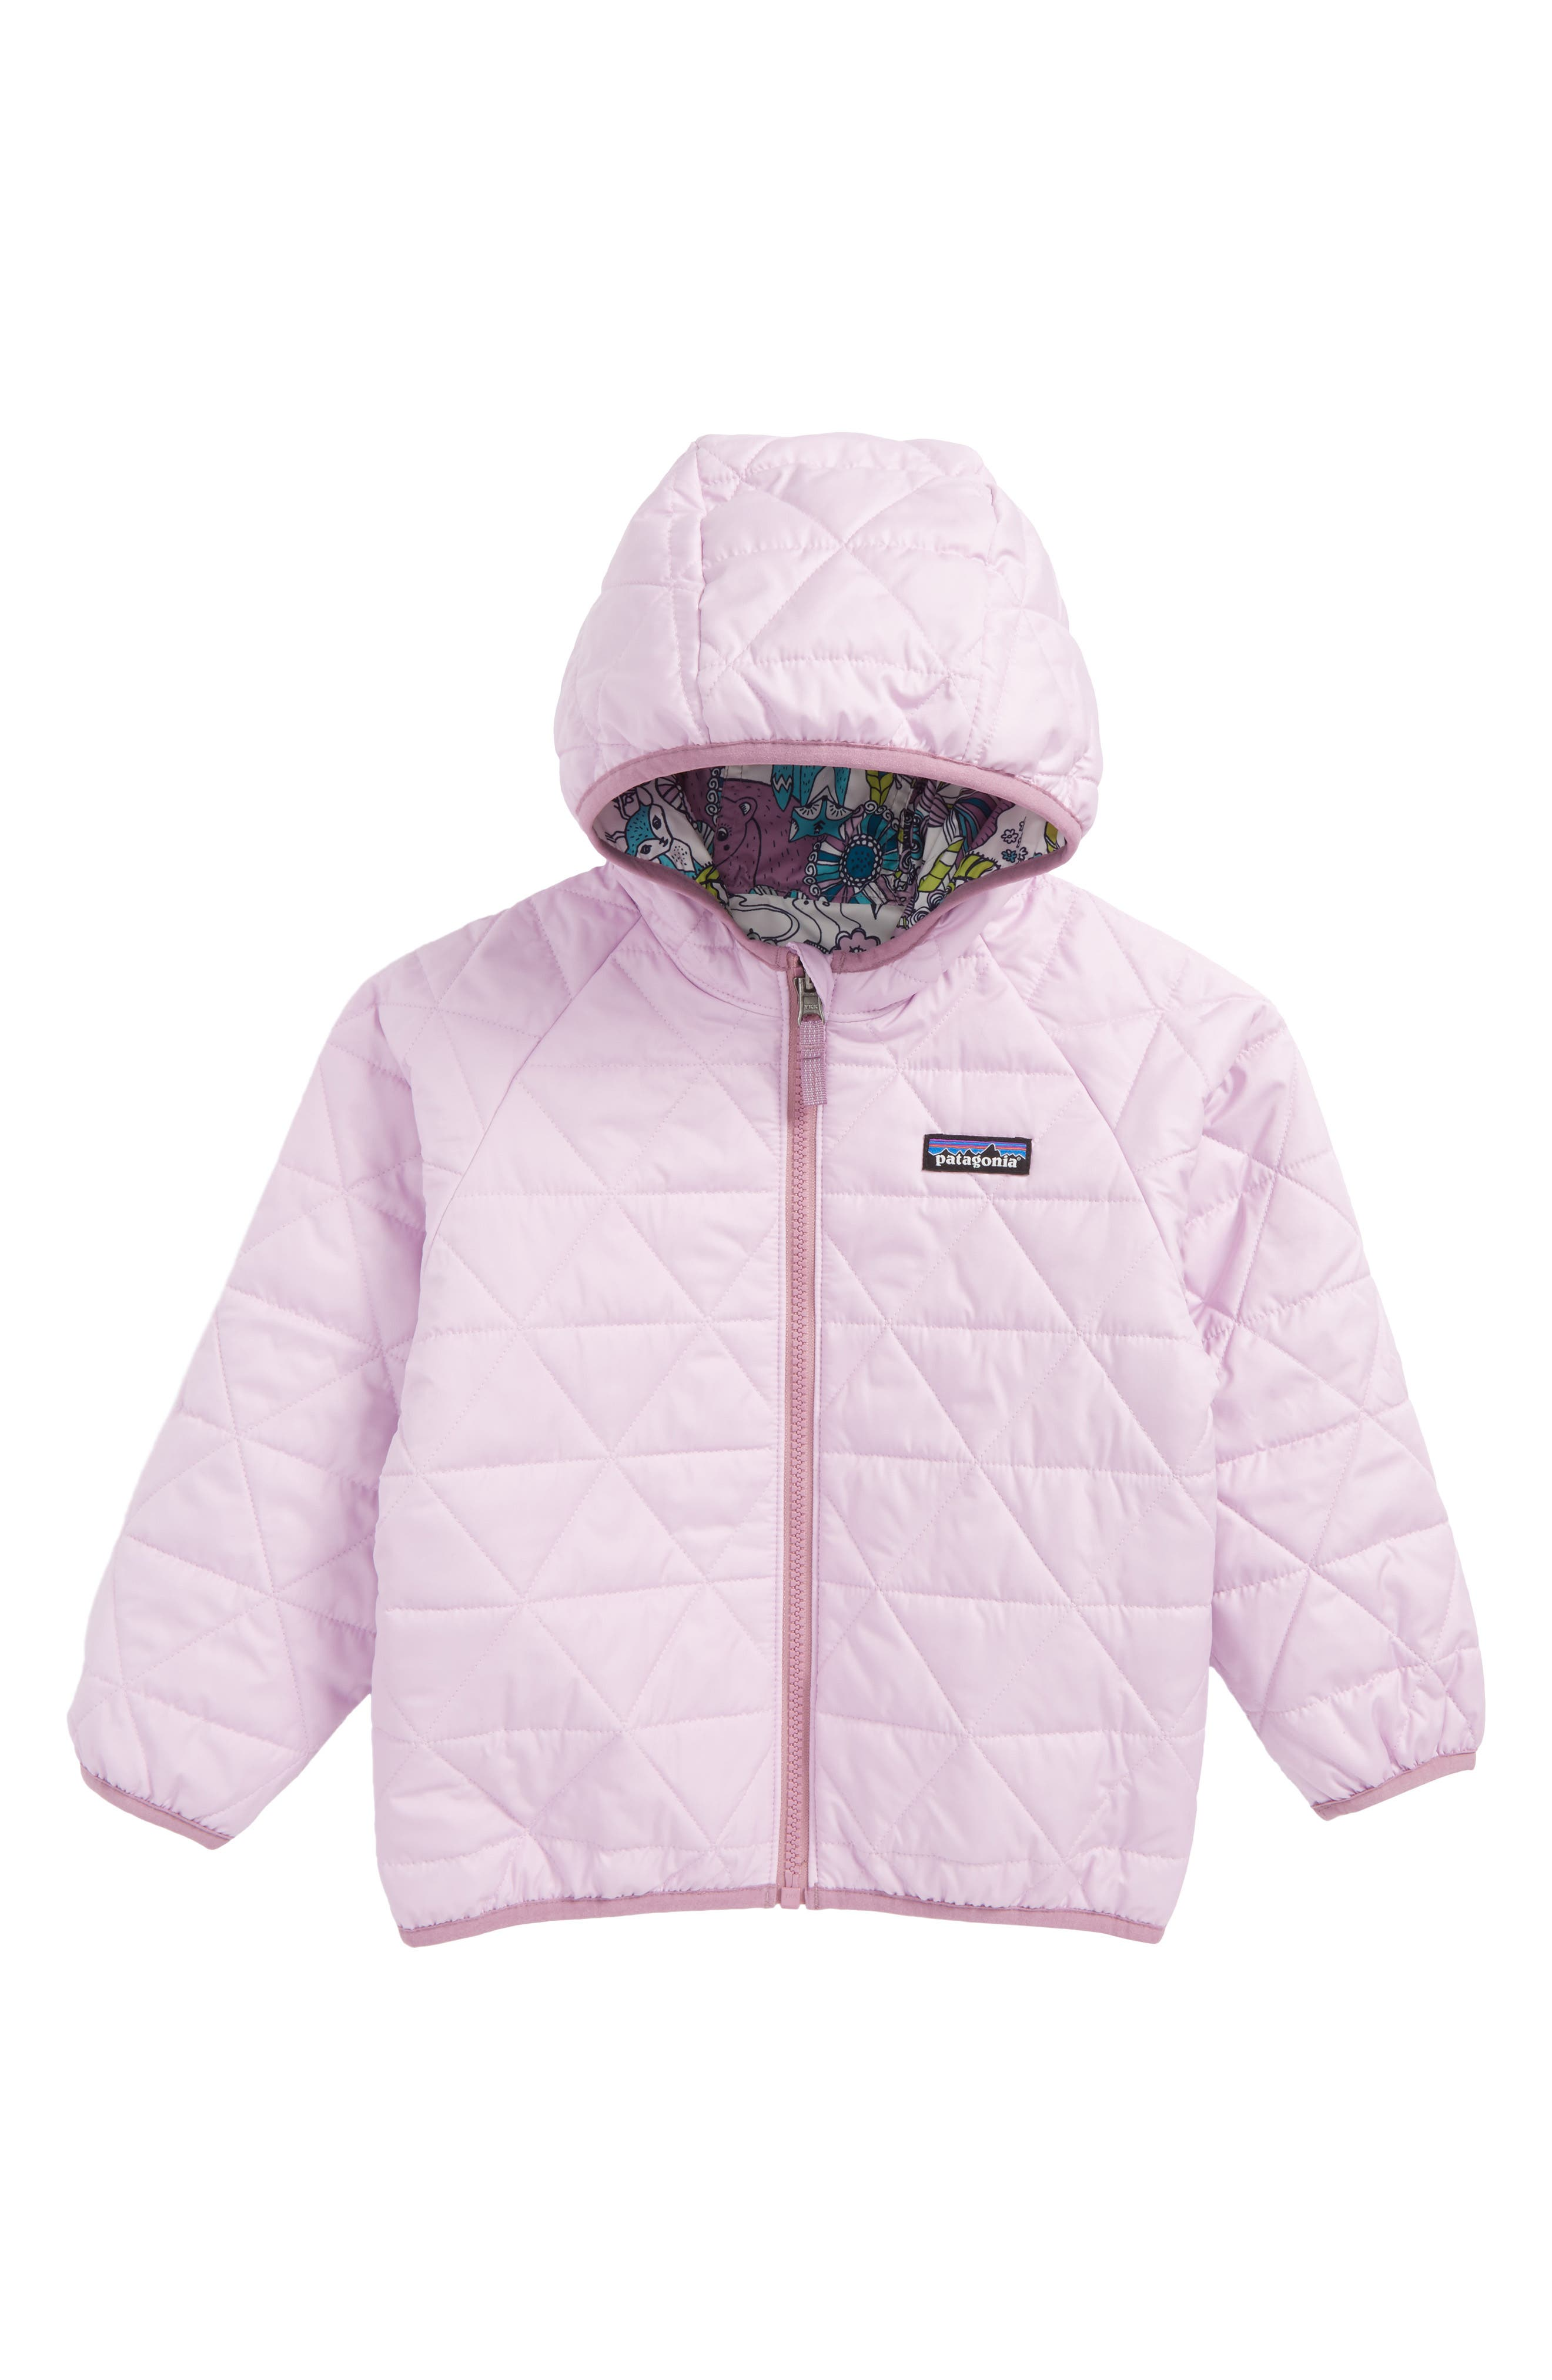 'Puff-Ball' Water Resistant Reversible Hooded Jacket,                             Alternate thumbnail 2, color,                             101